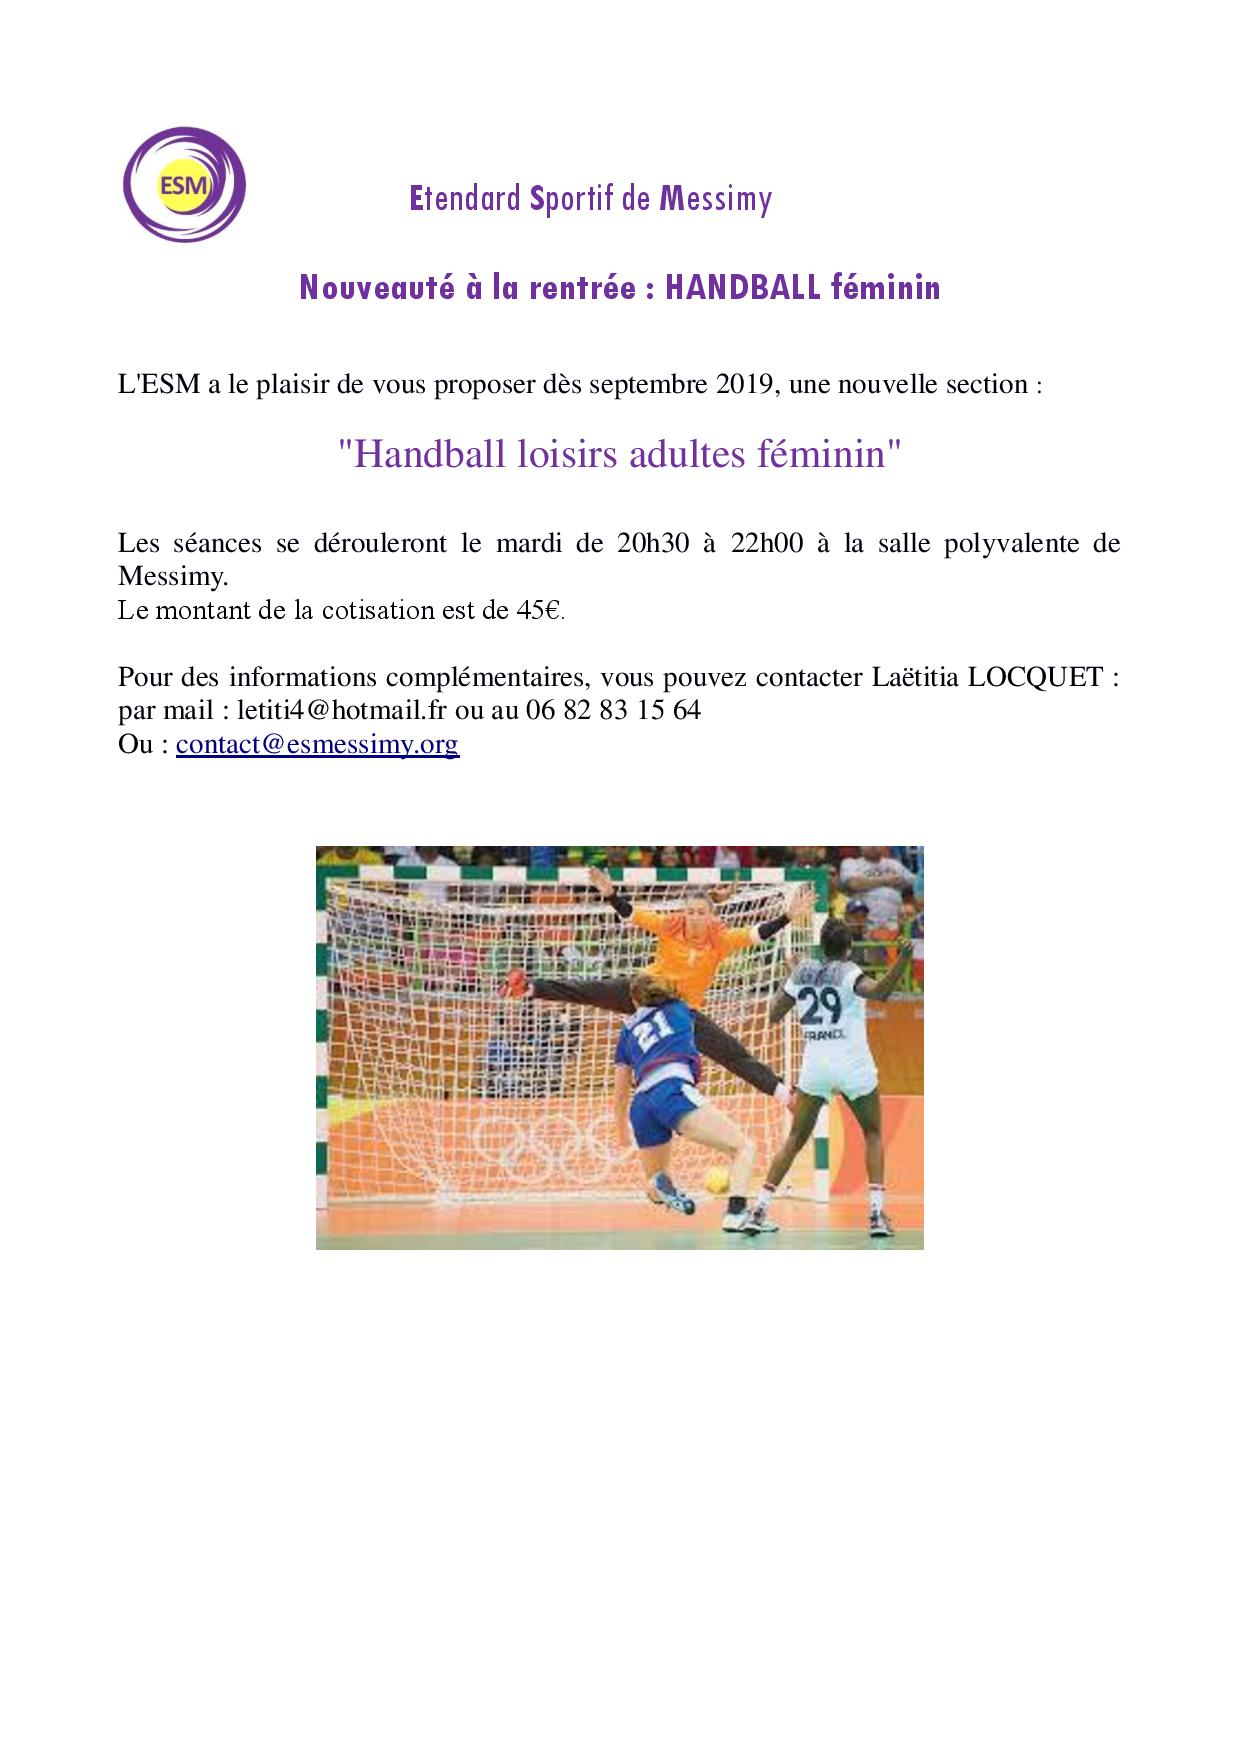 19 05 25 ESM article HANDBALL